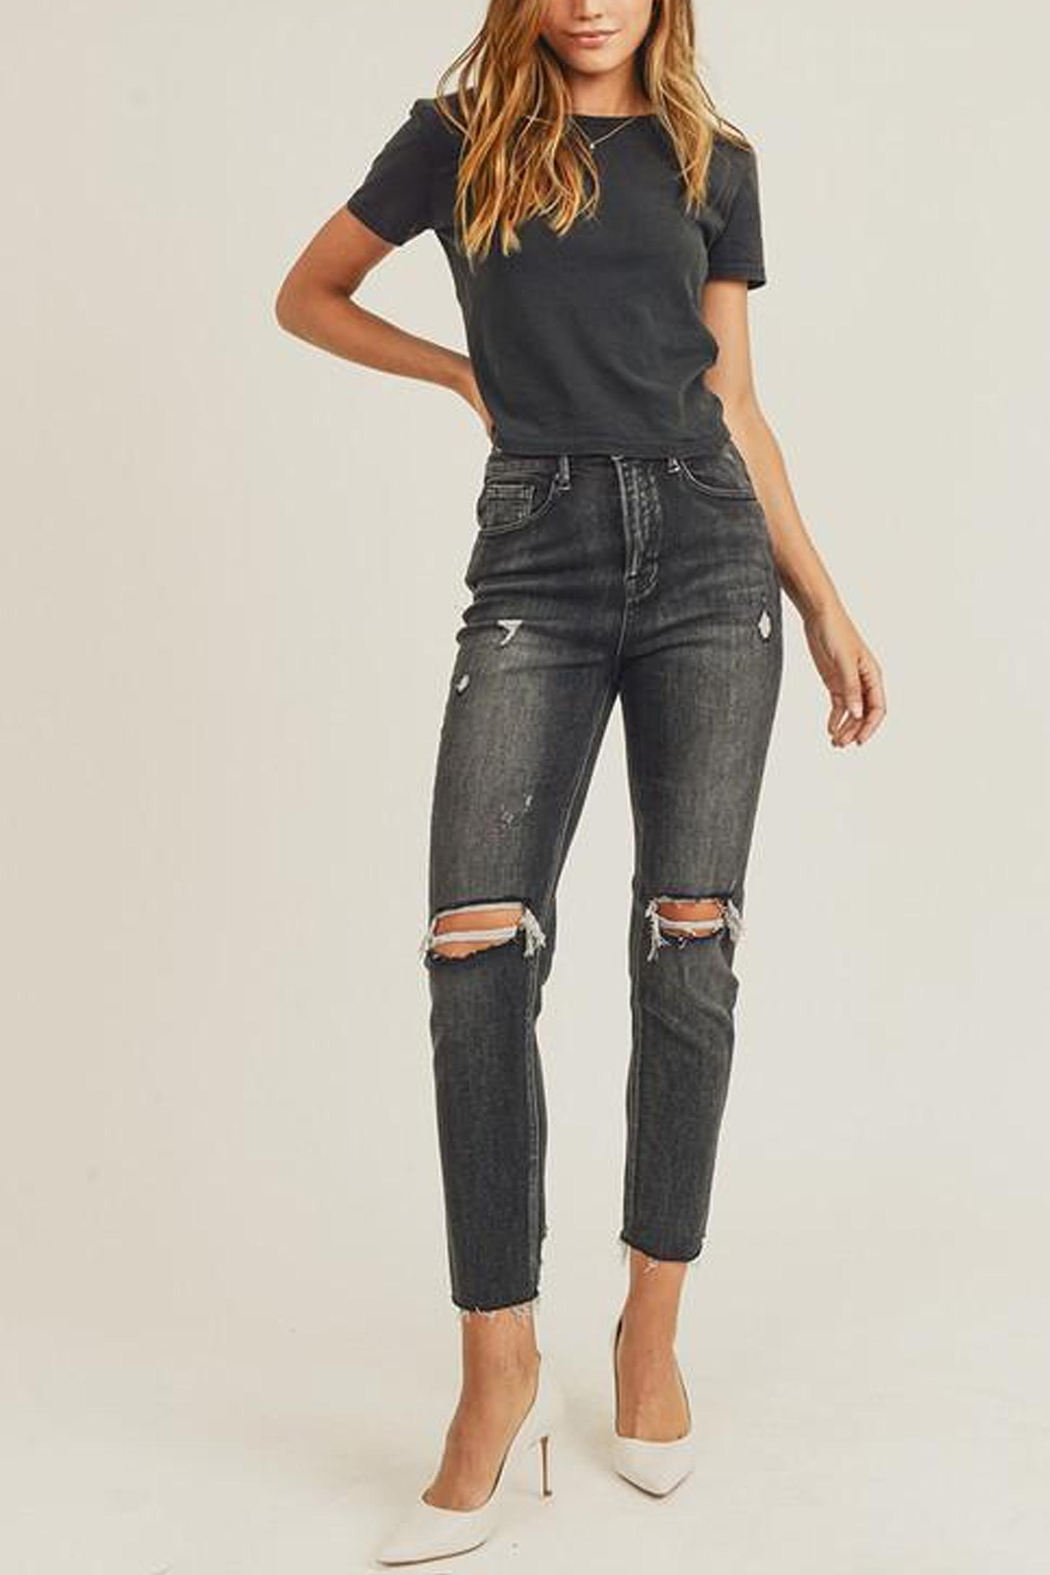 Risen Jeans  Black-Vintage-Wash Distressed Denim - Main Image